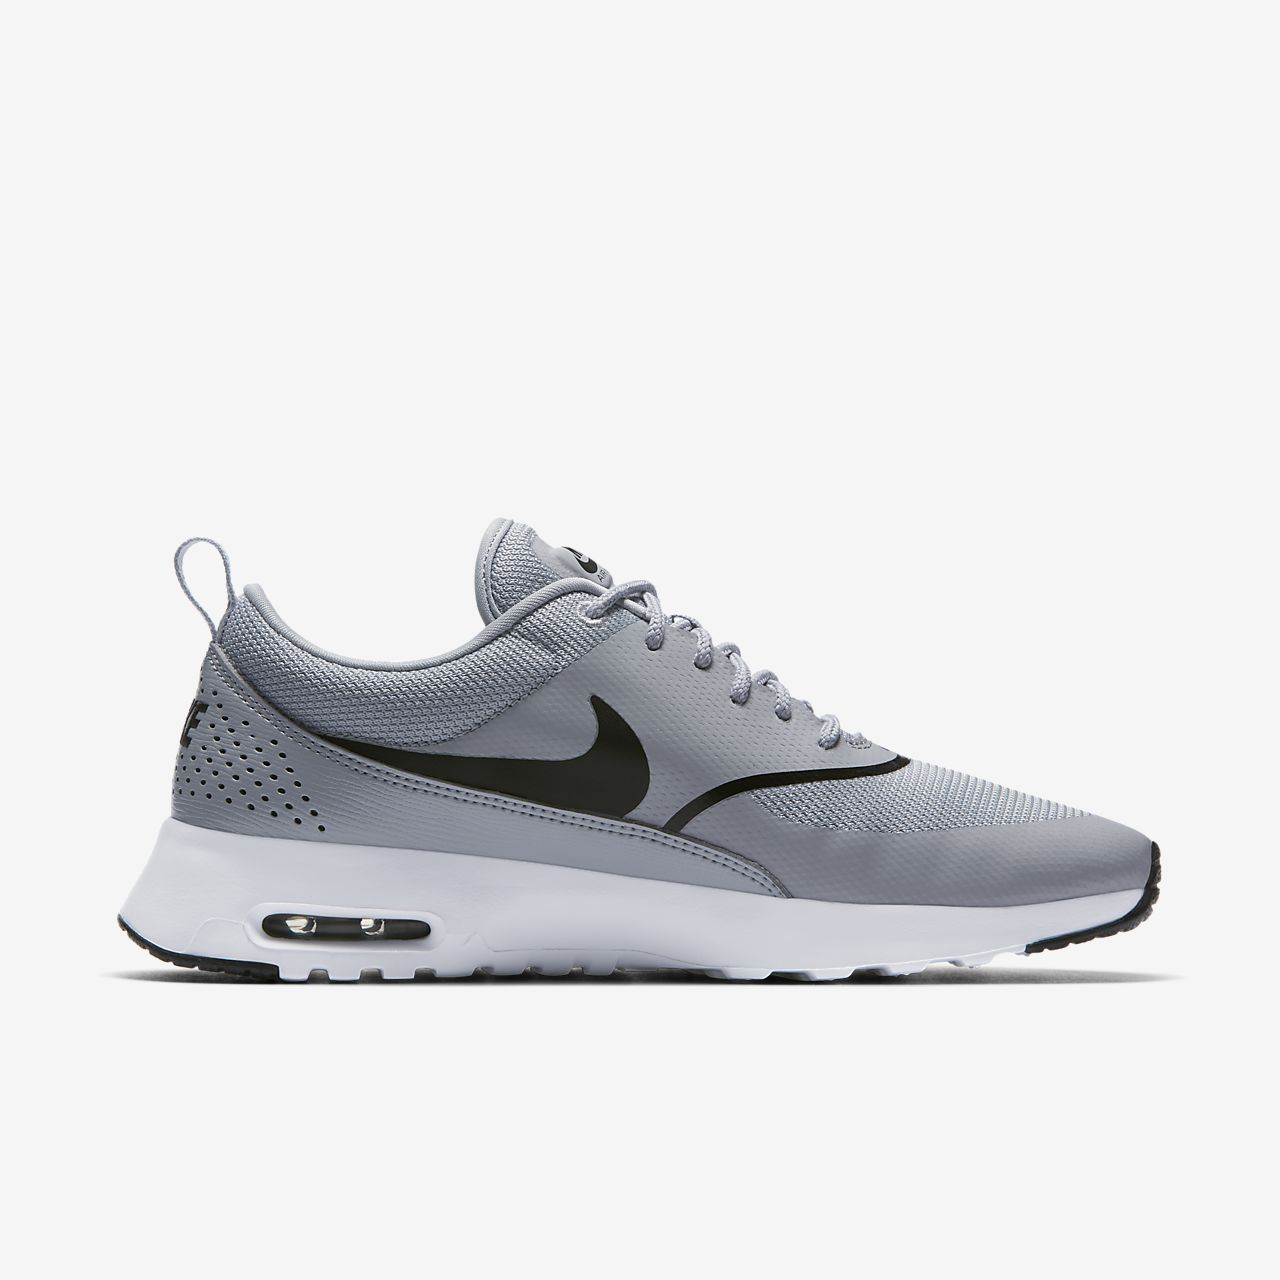 reputable site fce16 5aef7 ... Nike Air Max Thea Women s Shoe